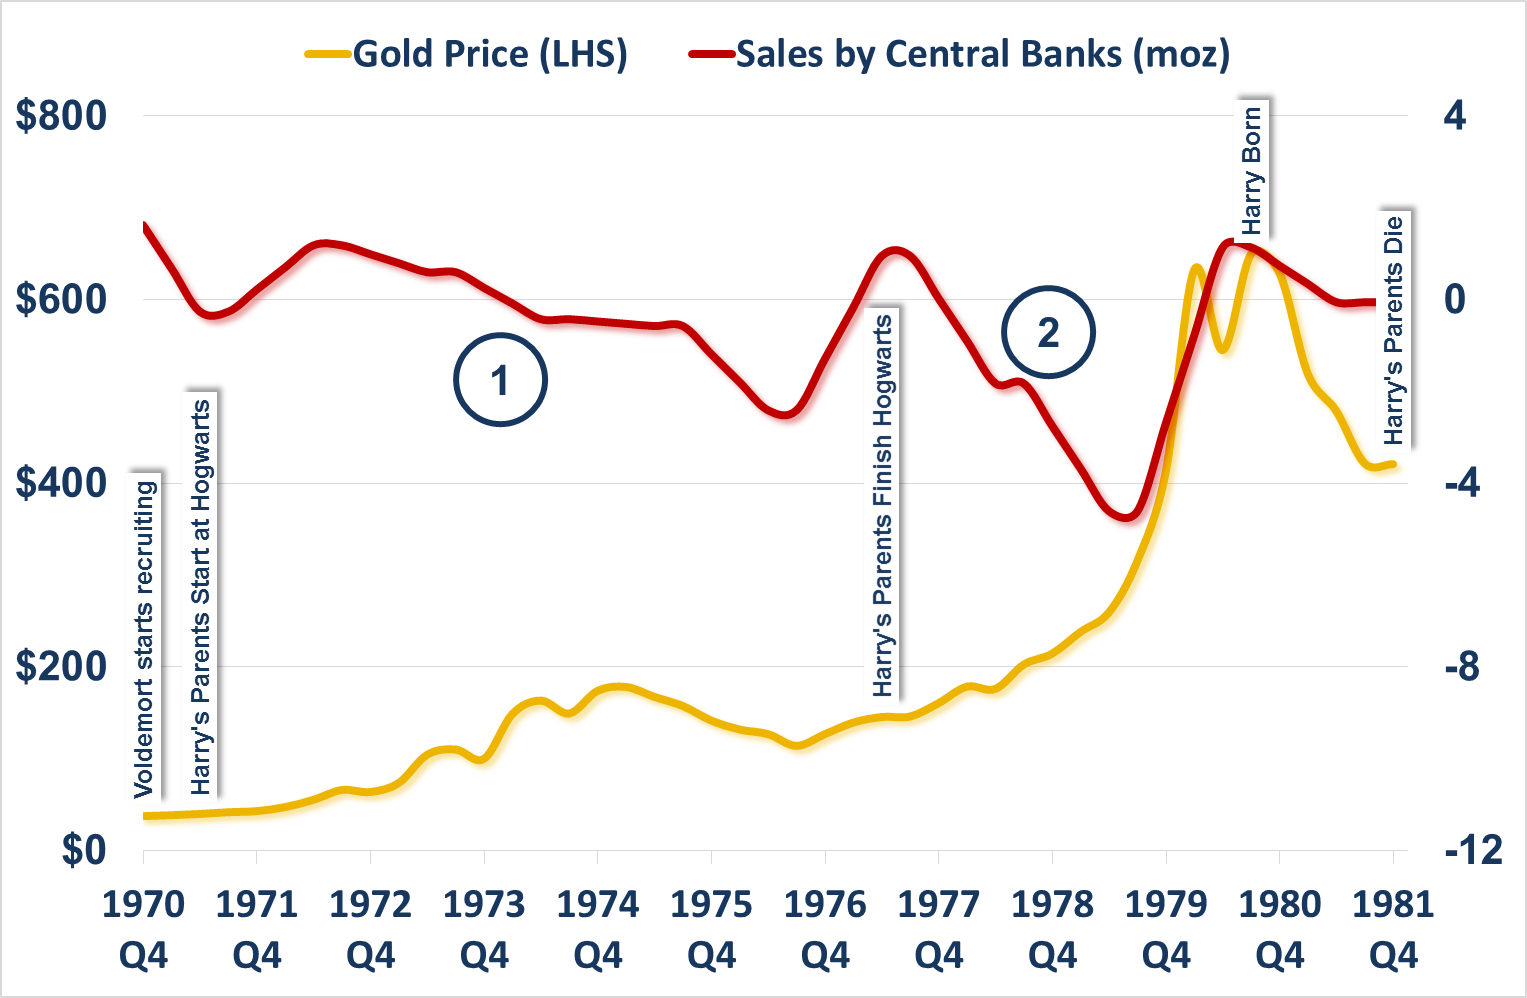 Gold Price and Gold Sales by Central Banks 1970s